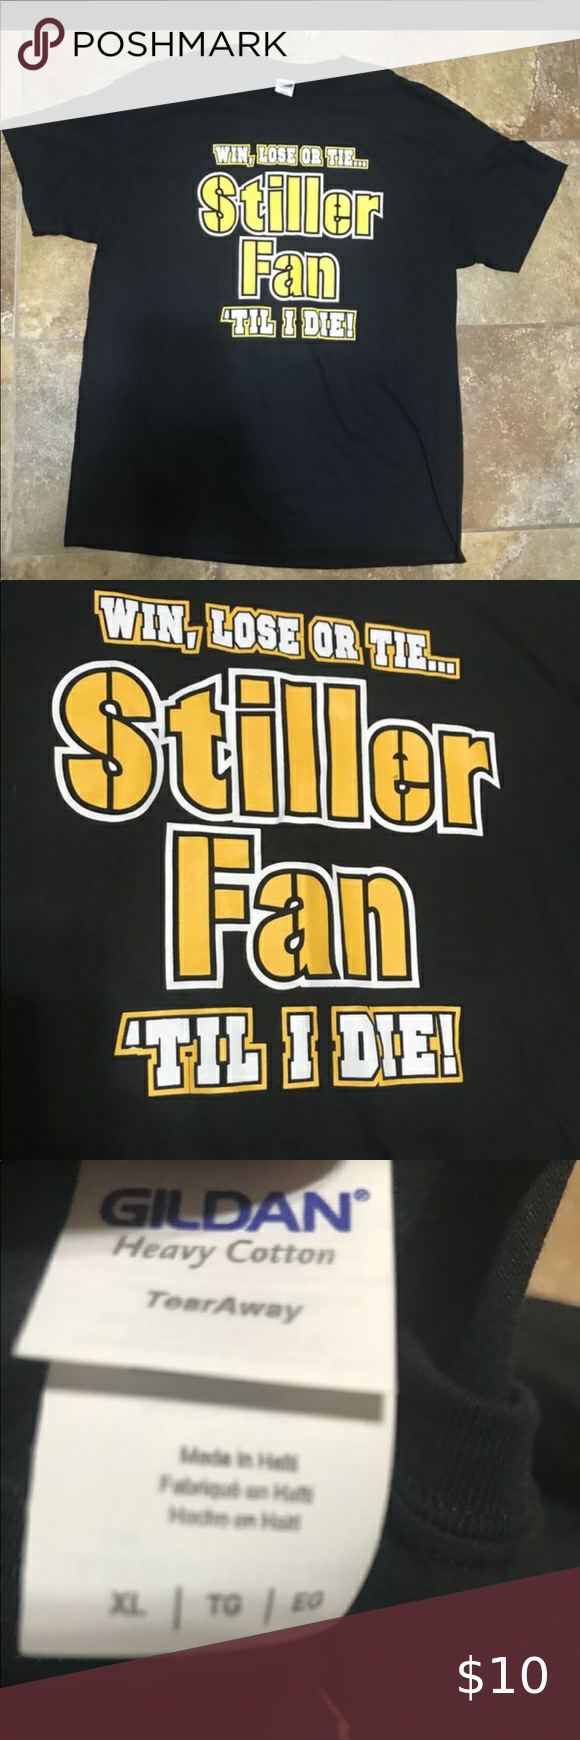 PITTSBURGH STEELERS STILLER FAN TIL I DIE T SHIRT in 2020